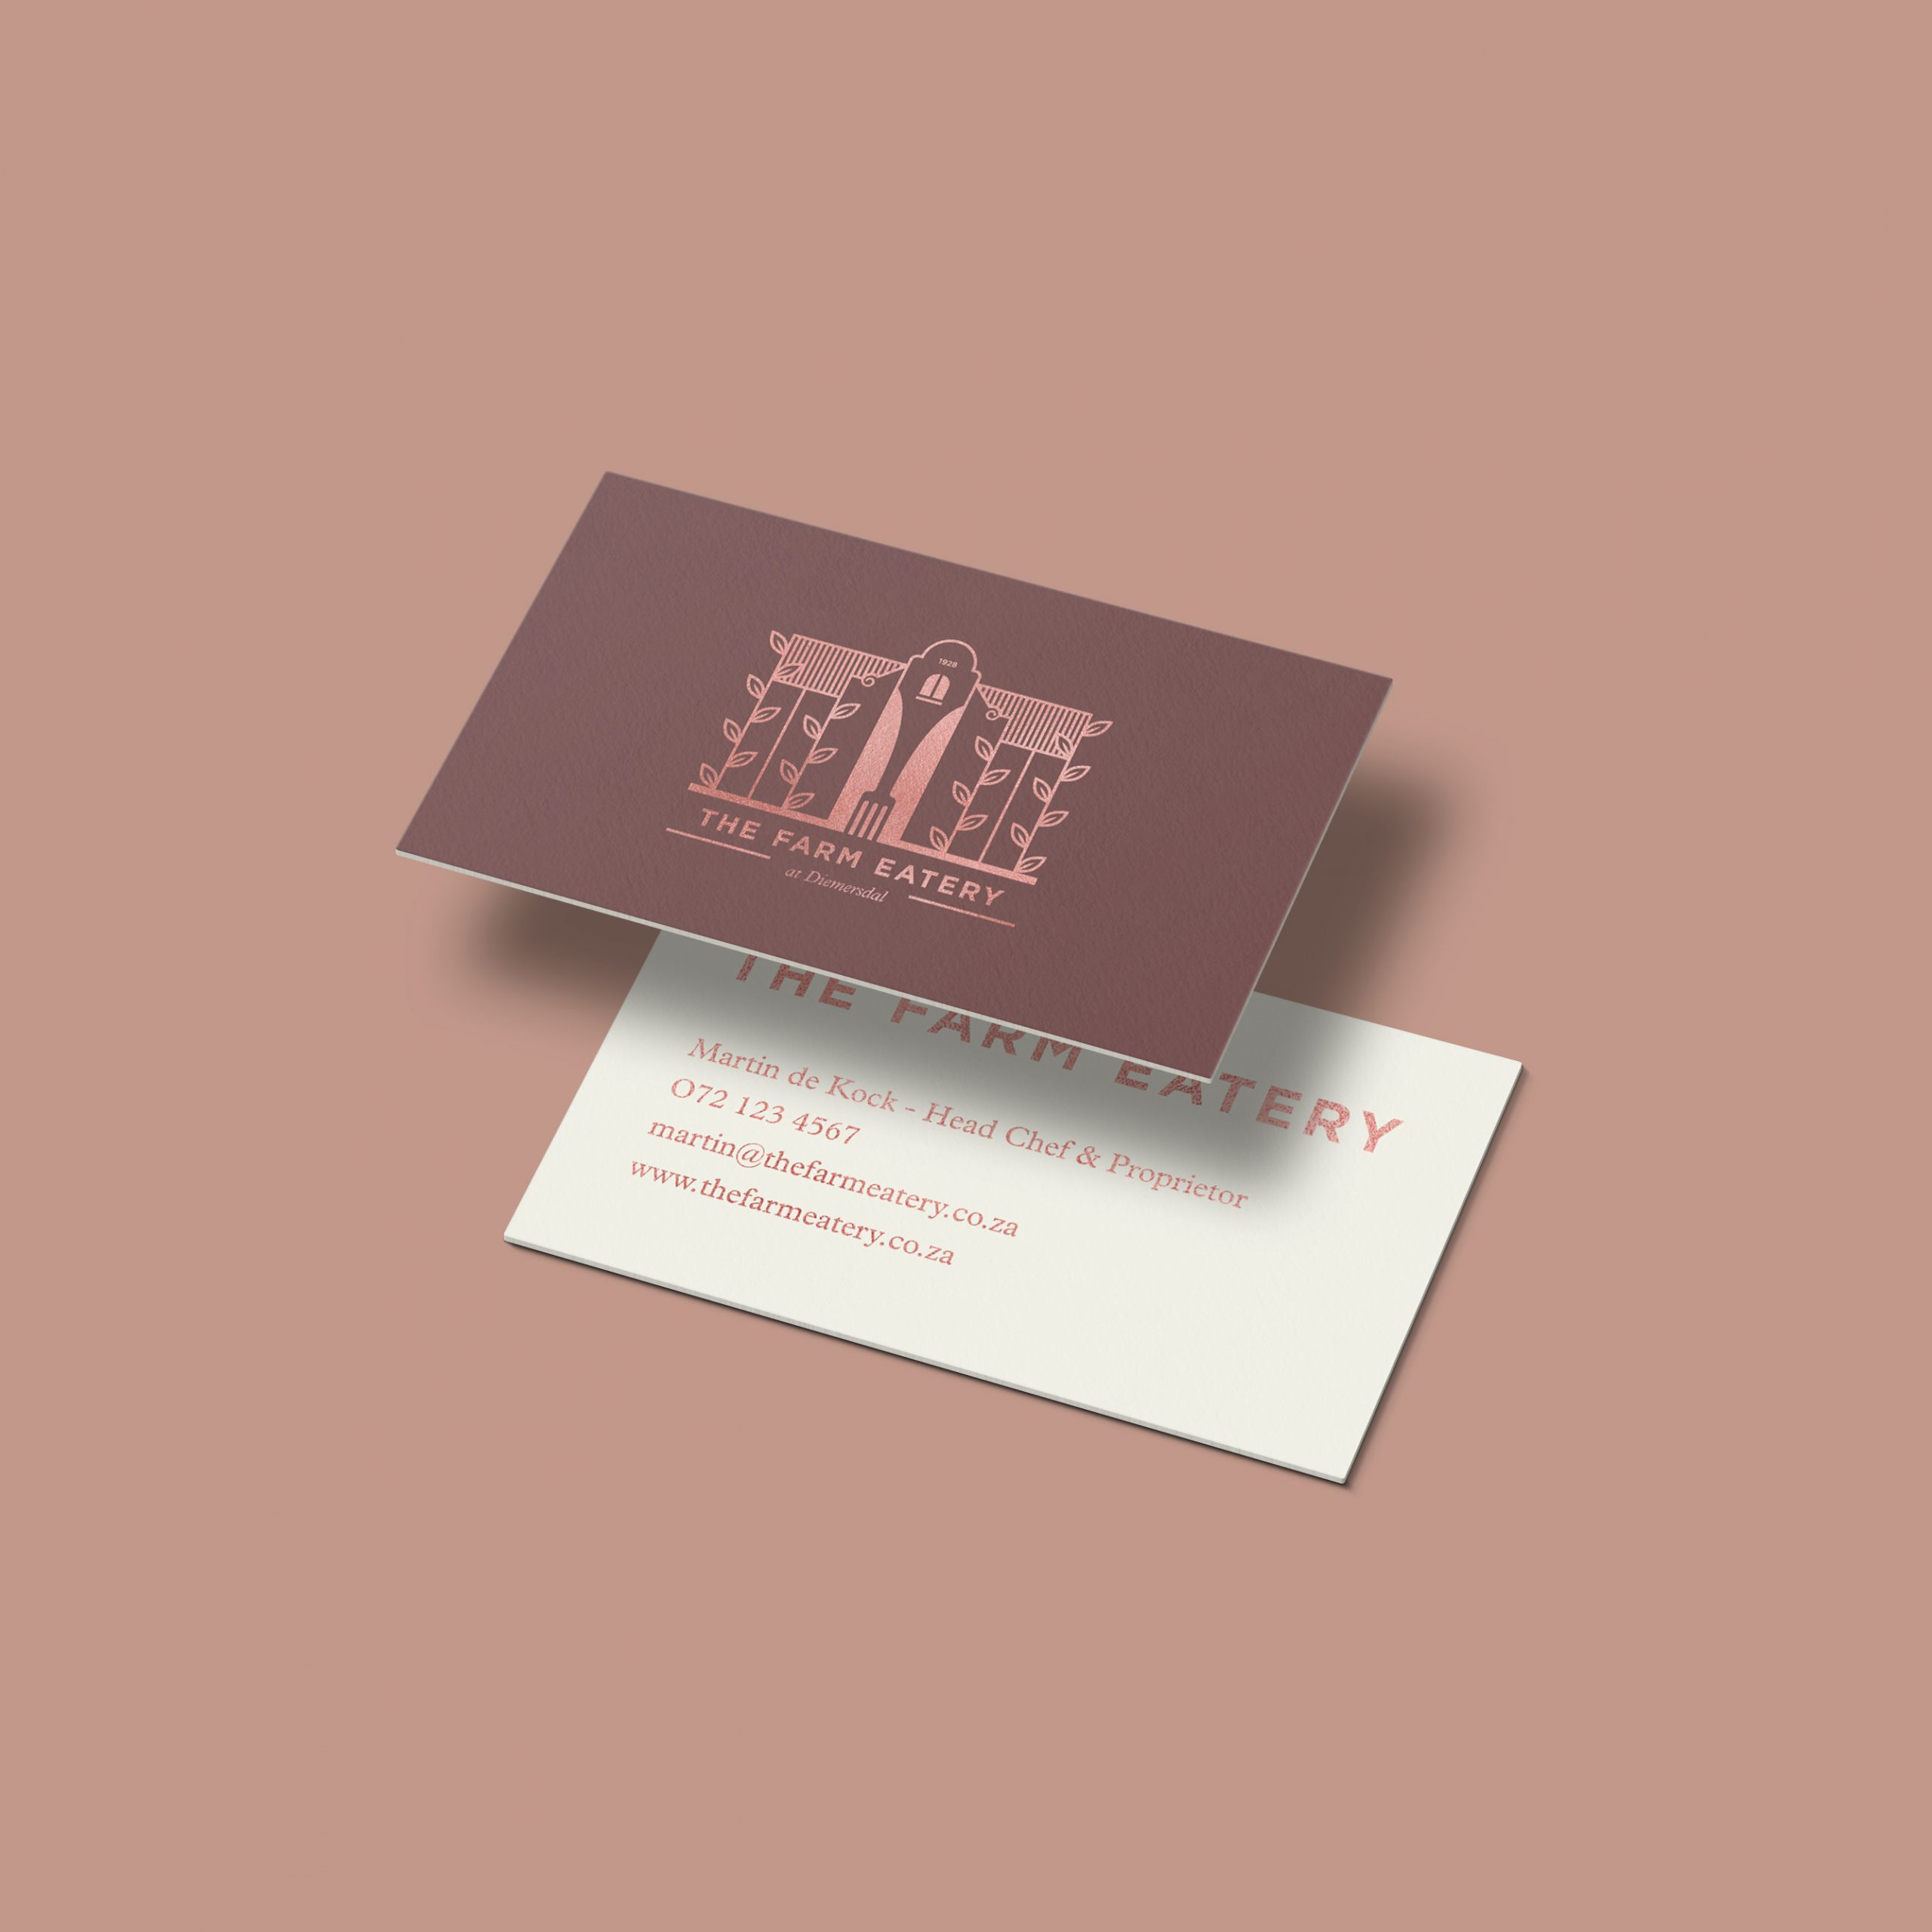 The Farm Eatery Business Card